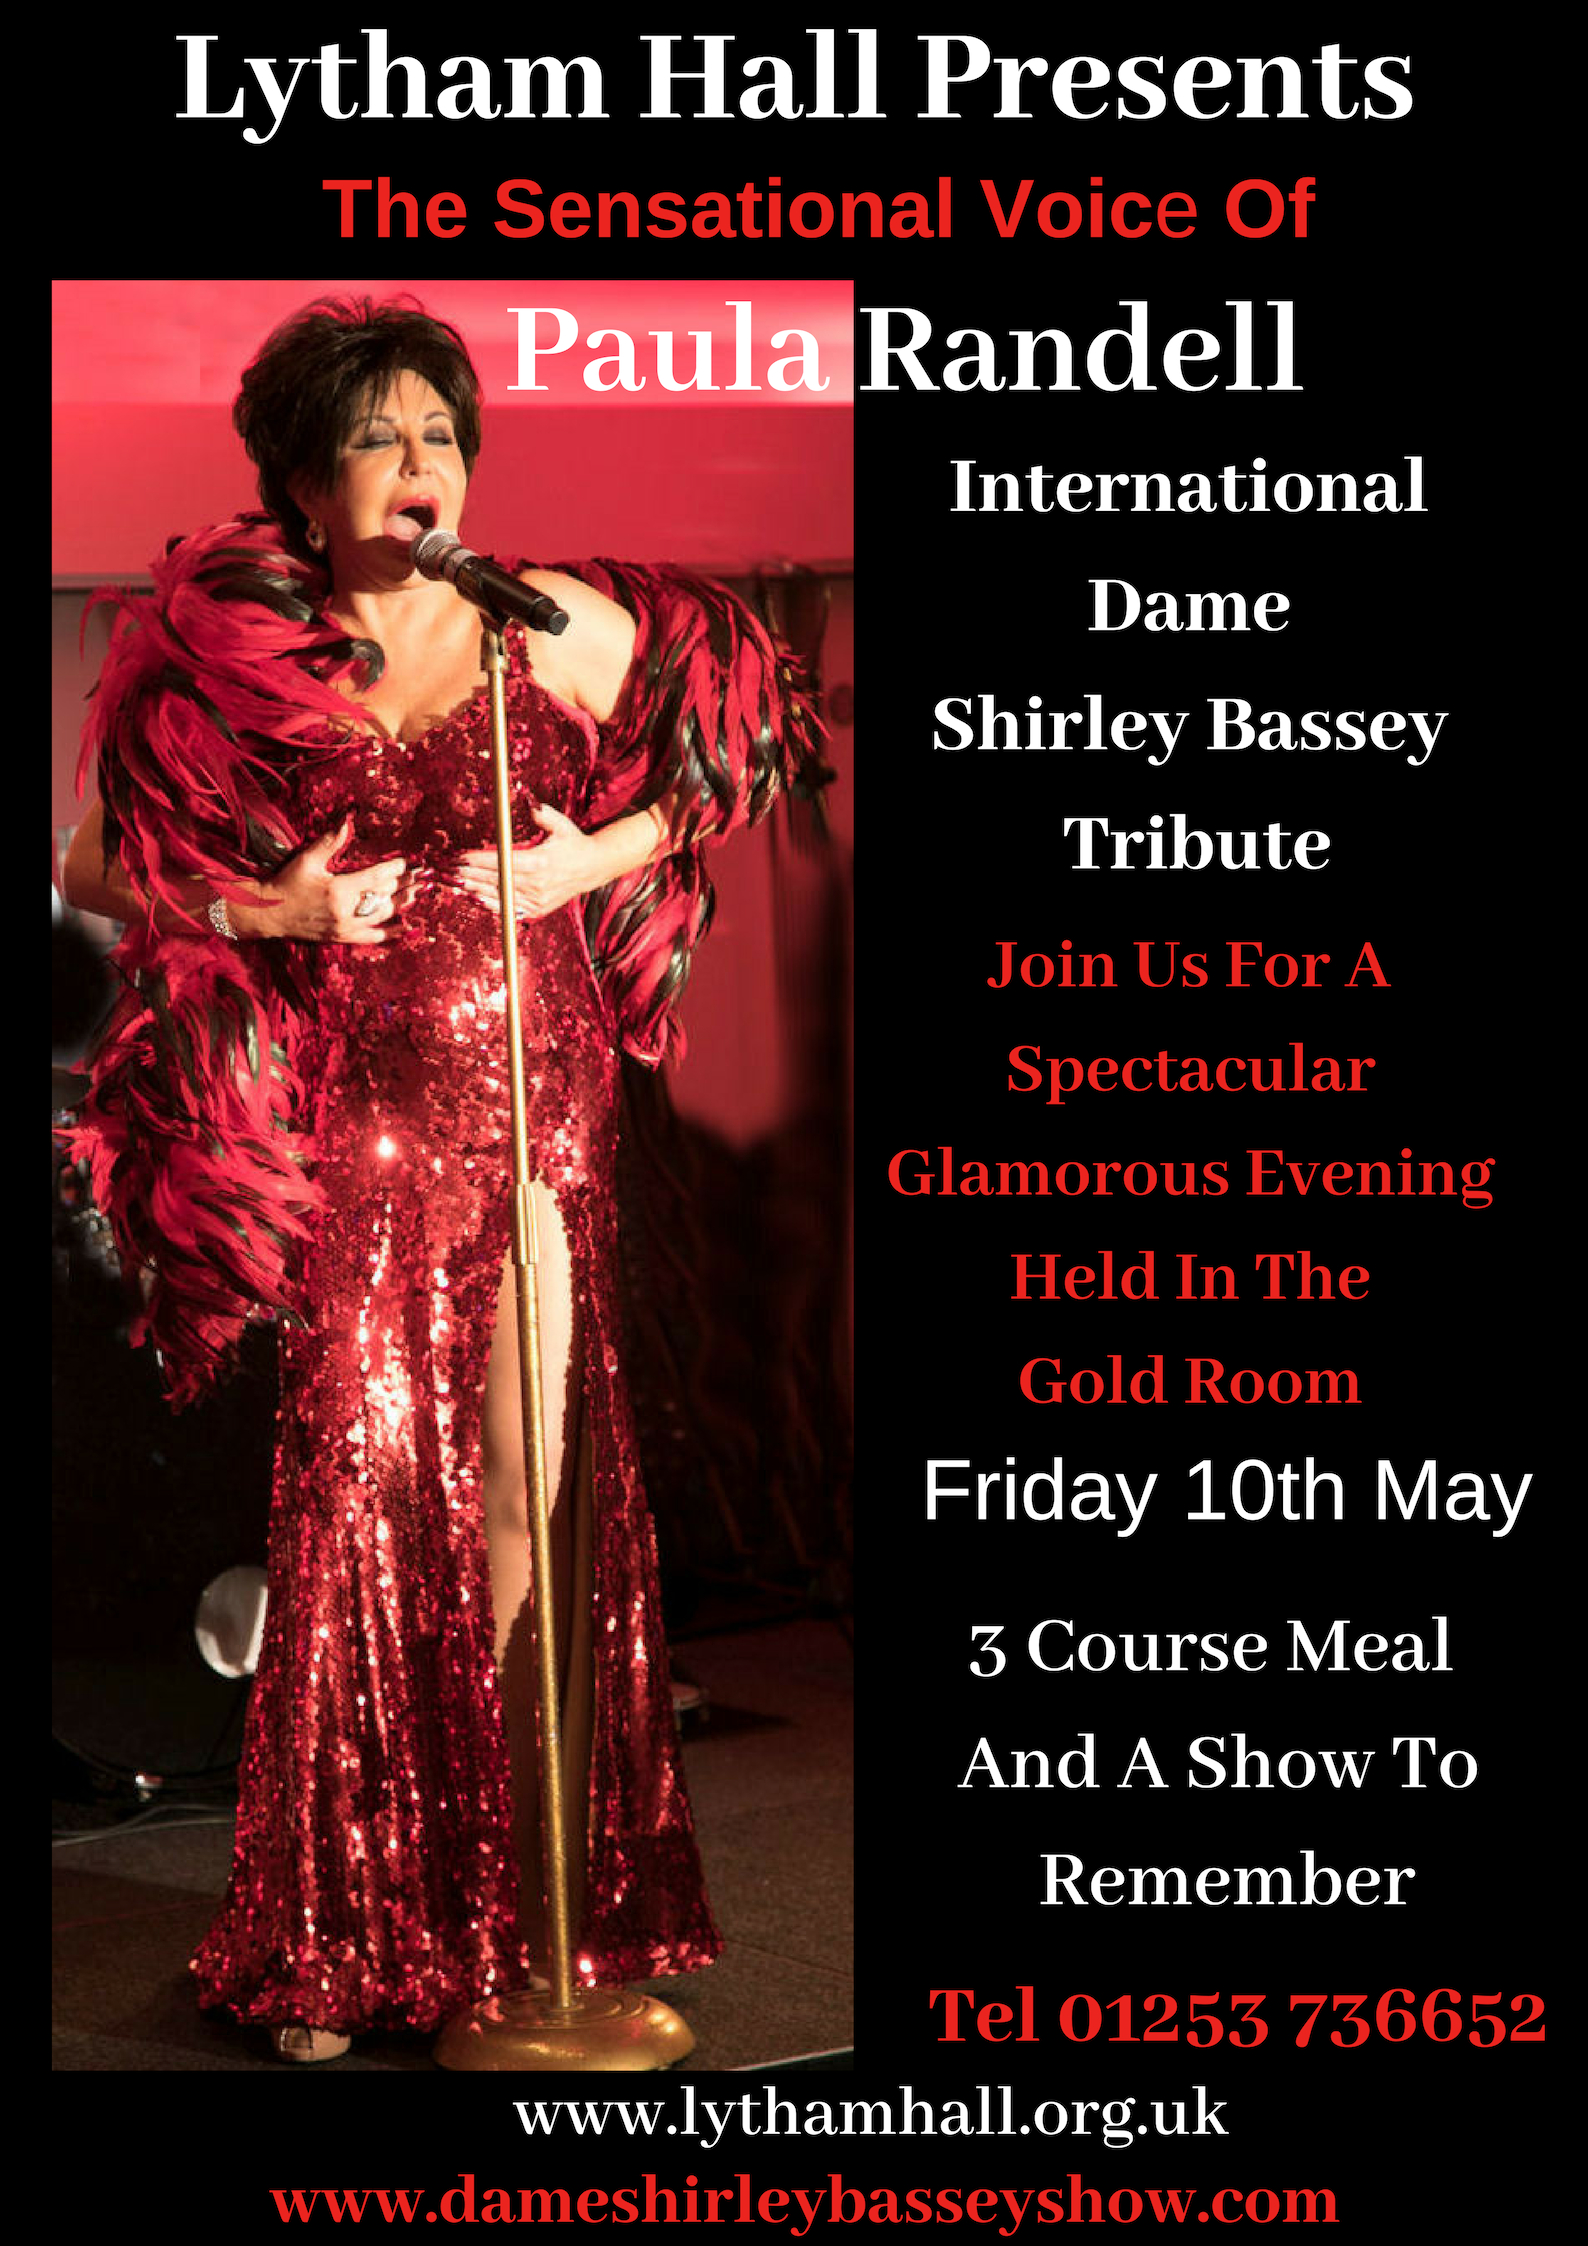 Shirley Bassey Tribute Poster